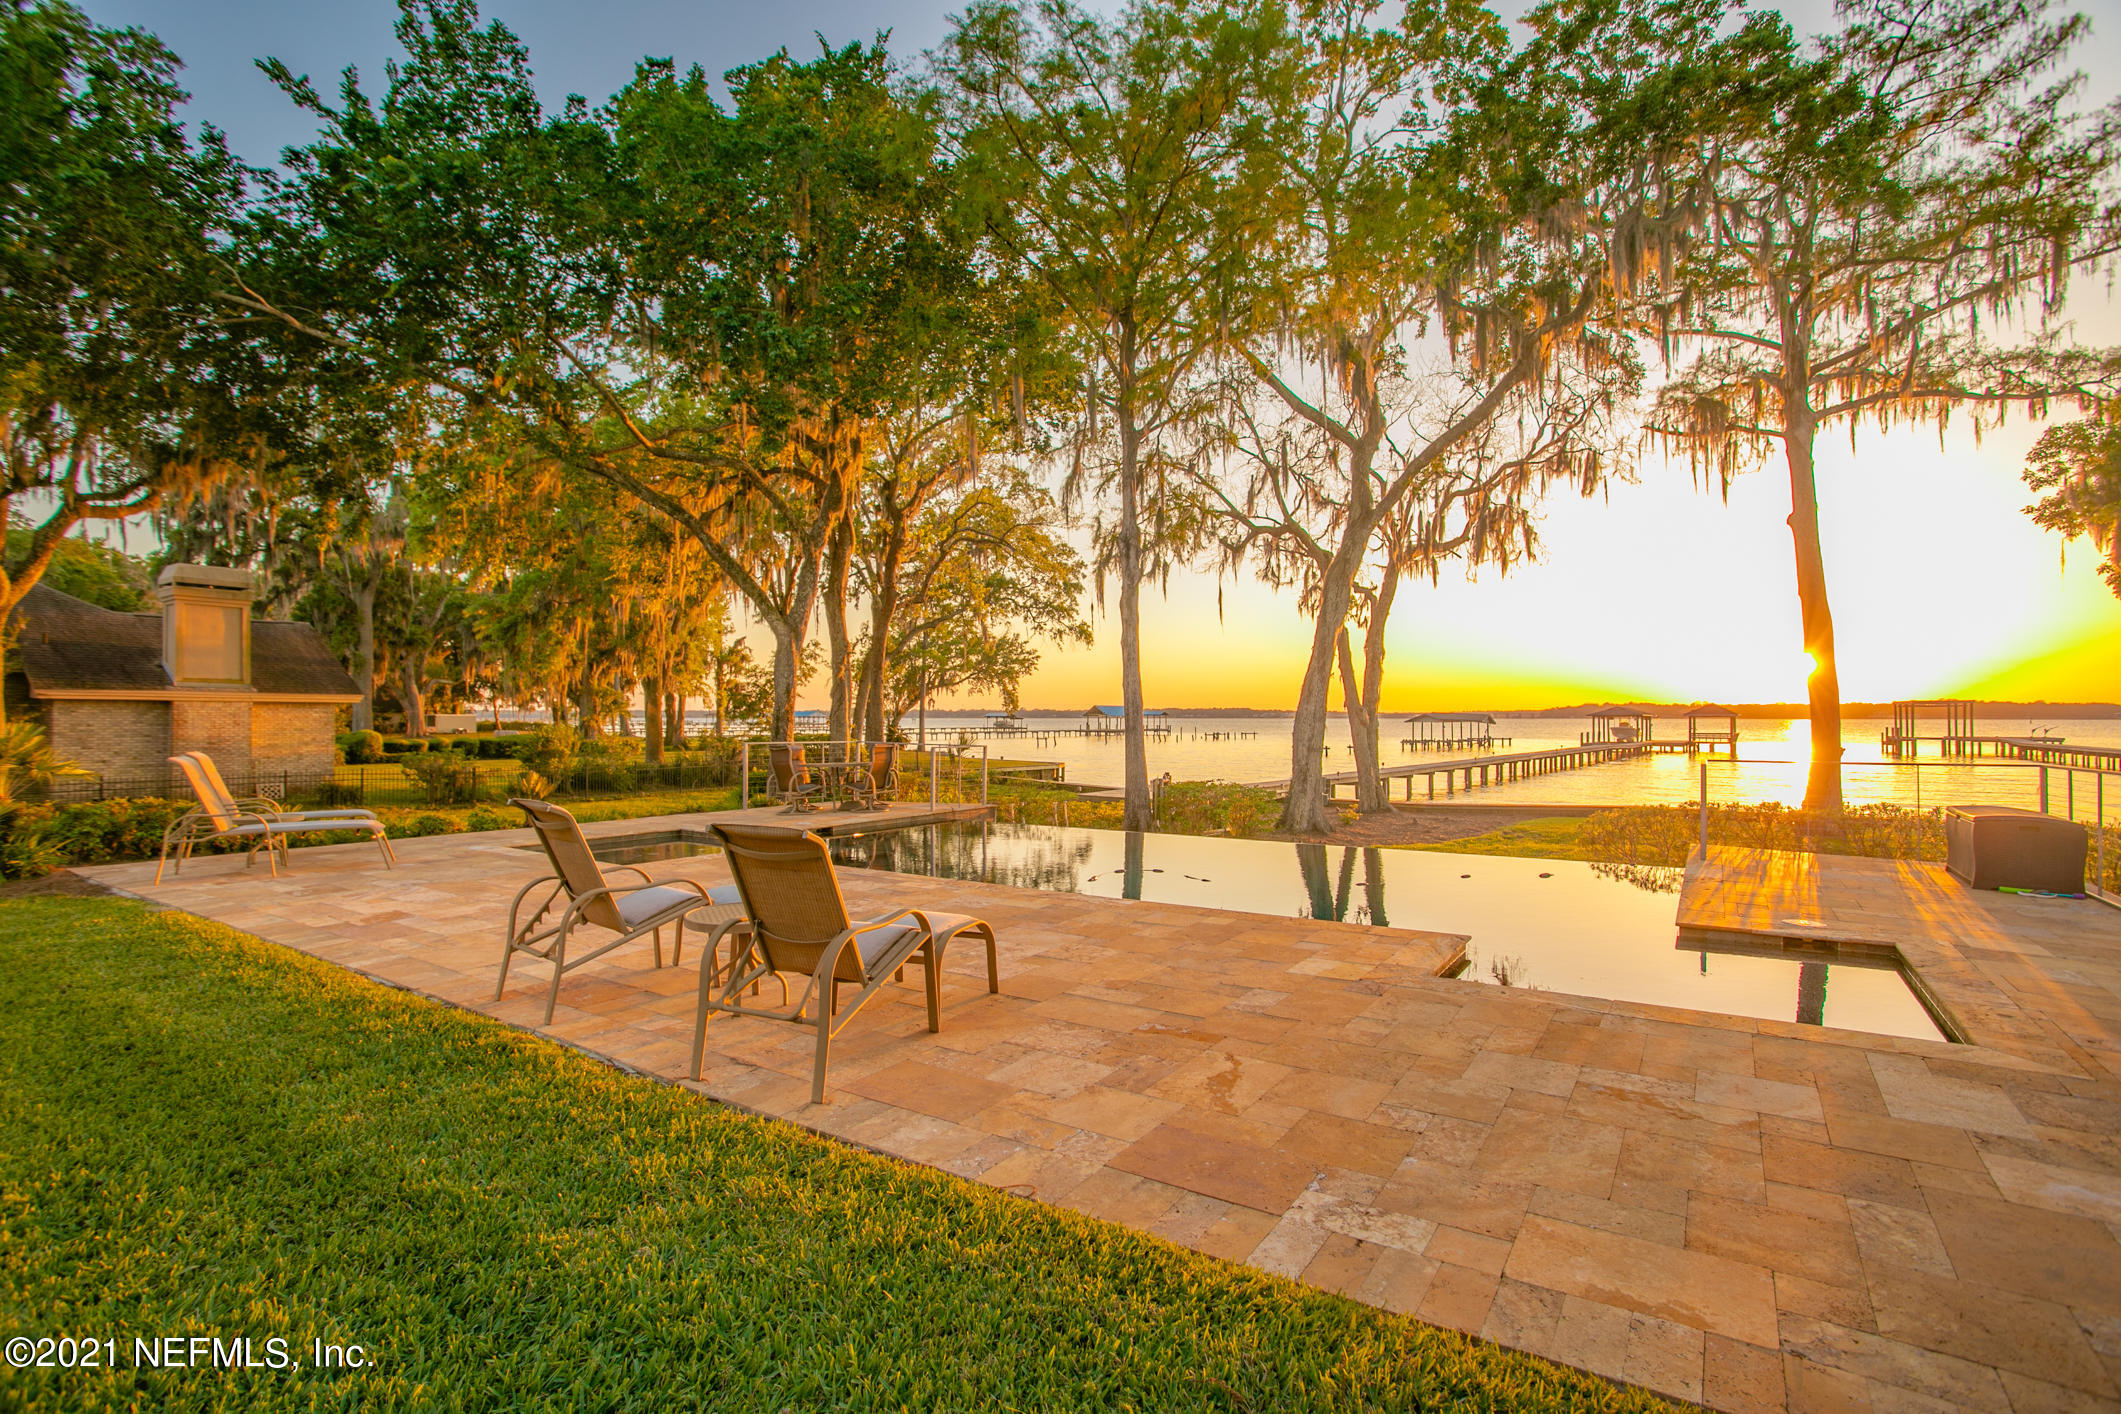 Exceptional St Johns Riverfront unlike any other. This owner has updated and renovated twice since owning the home to the highest level of standards. Doors open out from multiple rooms to the 2 story screened enclosed lanai complete with summer kitchen, 2 raised bars, gas fireplace, TV spaces and a rock waterfall with the ambient sounds of water. All overlooking the gorgeous infinity pool & river... Step back inside where you will find beautiful hardwood floors & coffered ceilings. The kitchen offers cabinets on every wall and a walk in pantry. Family meals enjoyed from the octagonal shaped breakfast room offering river views. Luxury master on 2nd floor with separate parlor and fireplace. Closets and overflow storage galore. Also upstairs is a deluxe home theatre & bar area.5 car garage.